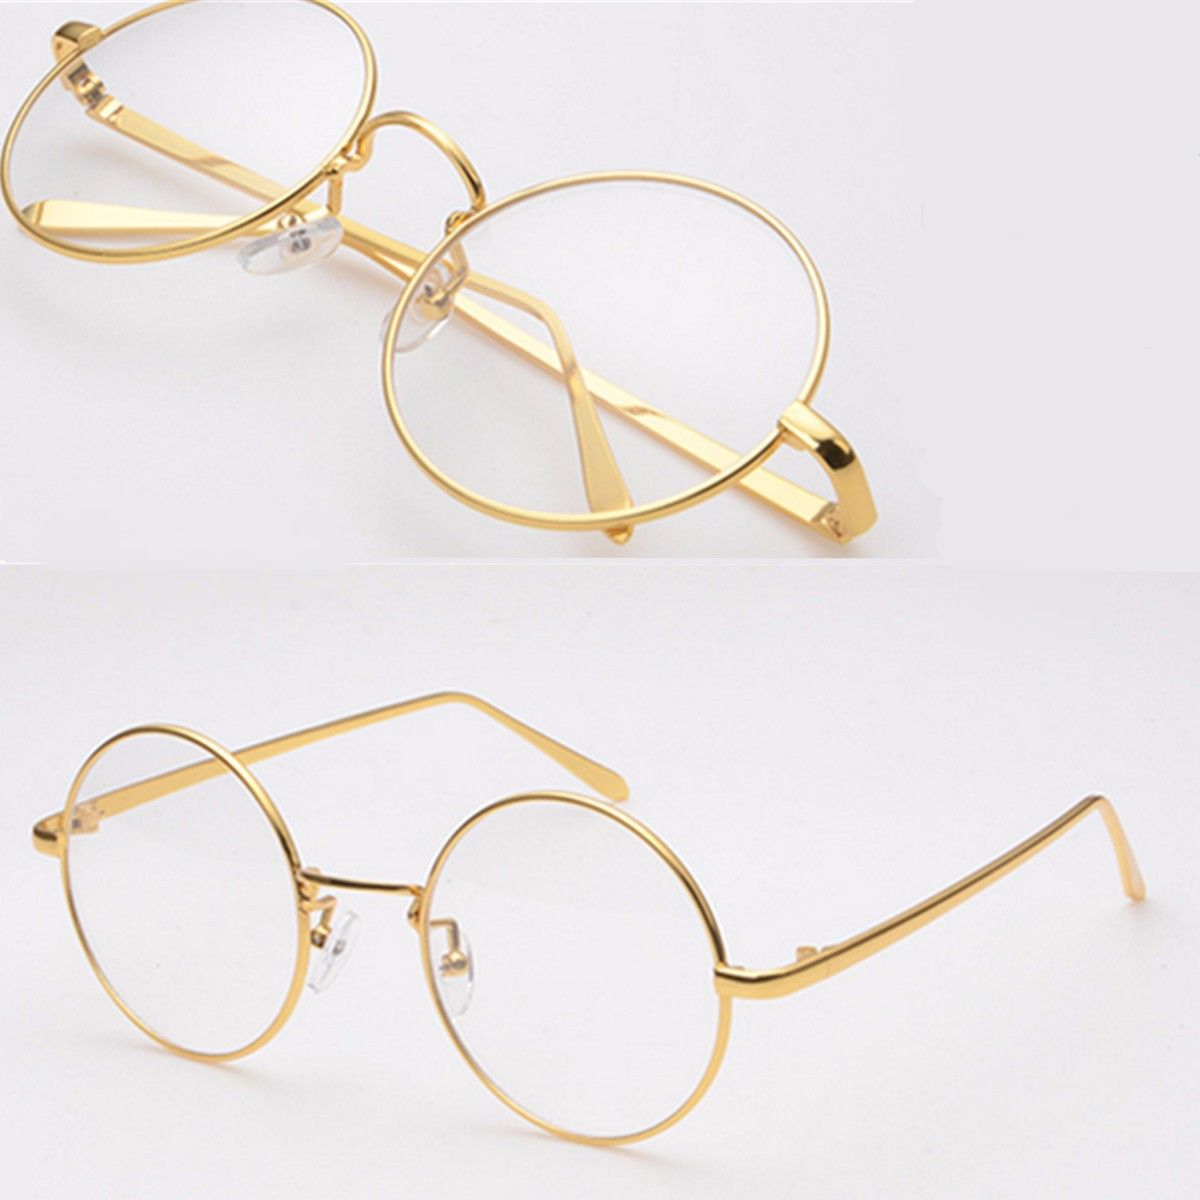 16bc5072040 GOLD Metal Vintage Round Eyeglass Frame Clear Lens Full-Rim Glasses ...